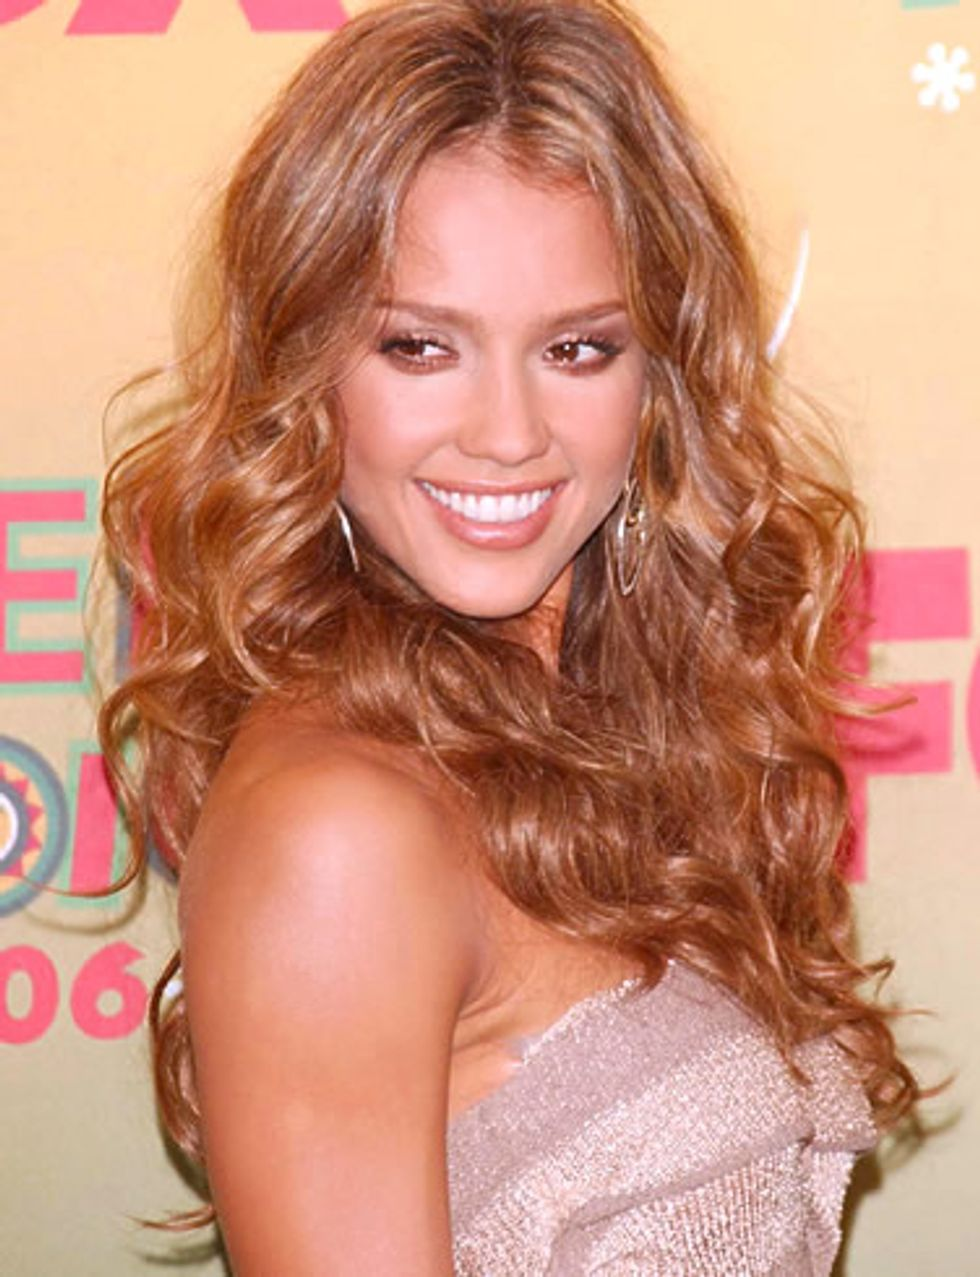 Jessica Alba on Broadway? Stranger Things Have Happened...